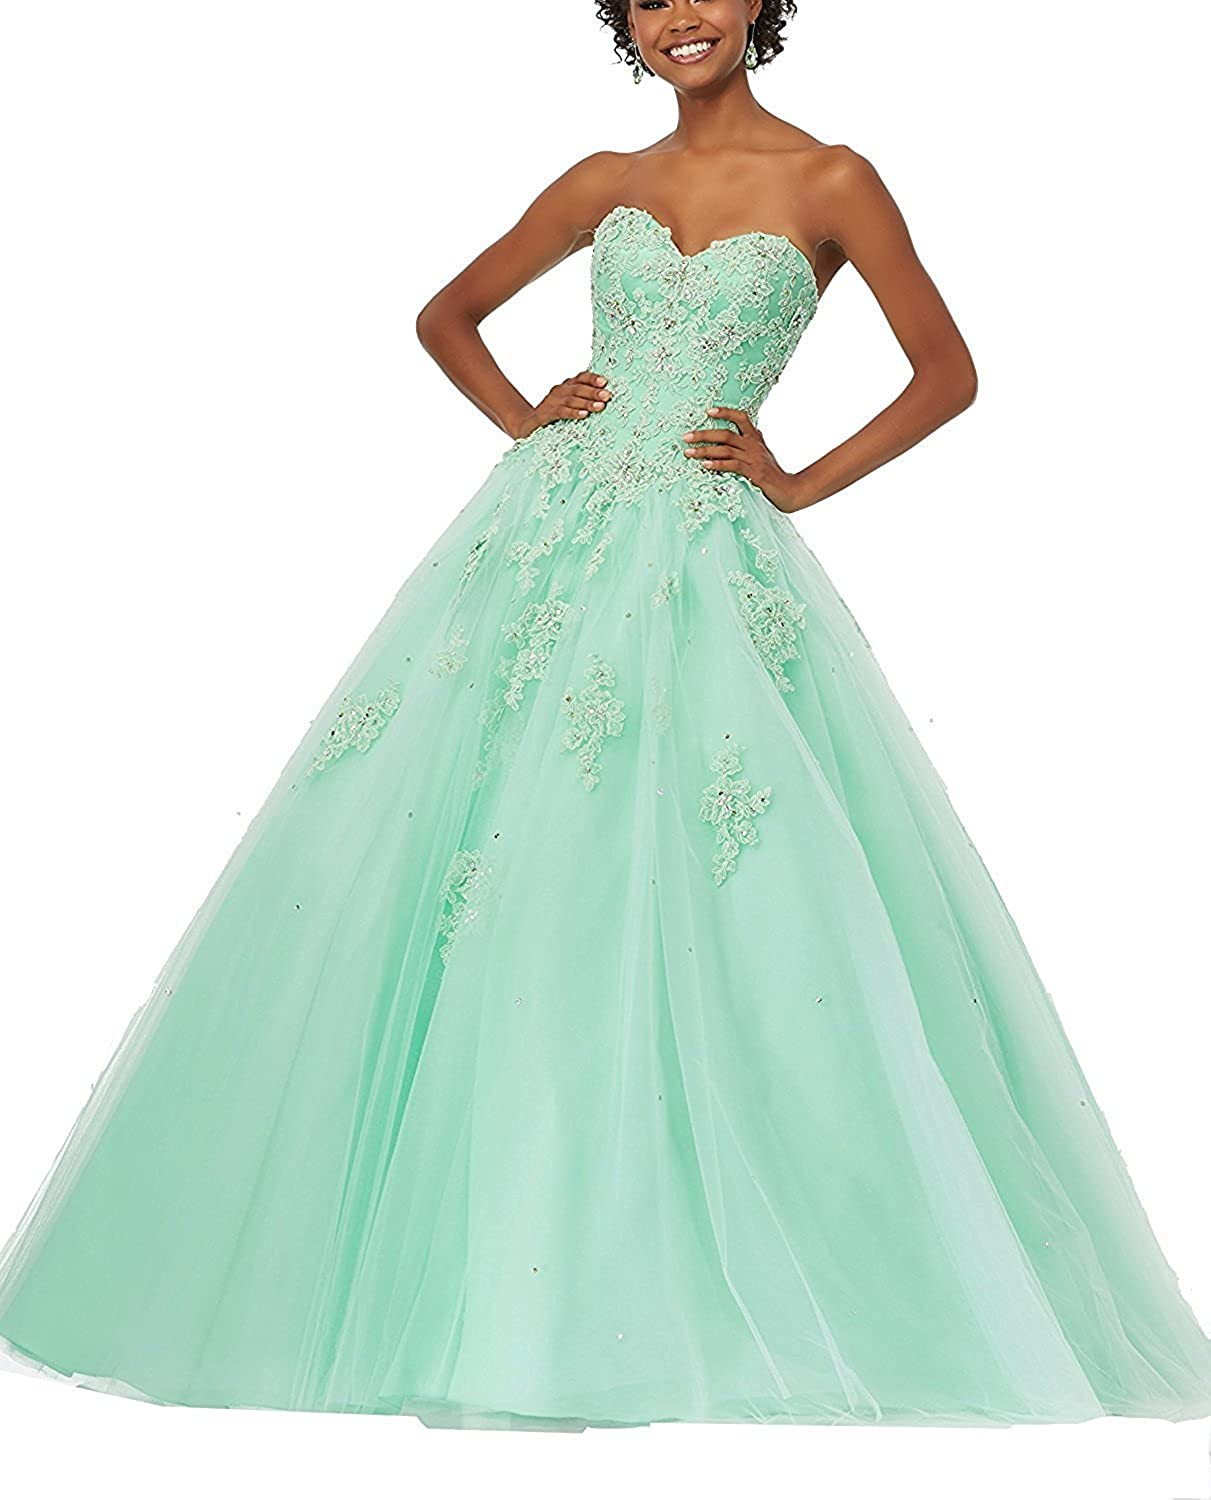 Epinkbridal Sweetheart Lace Applique Floor Length Tulle Ball Gown Quinceanera Dresses